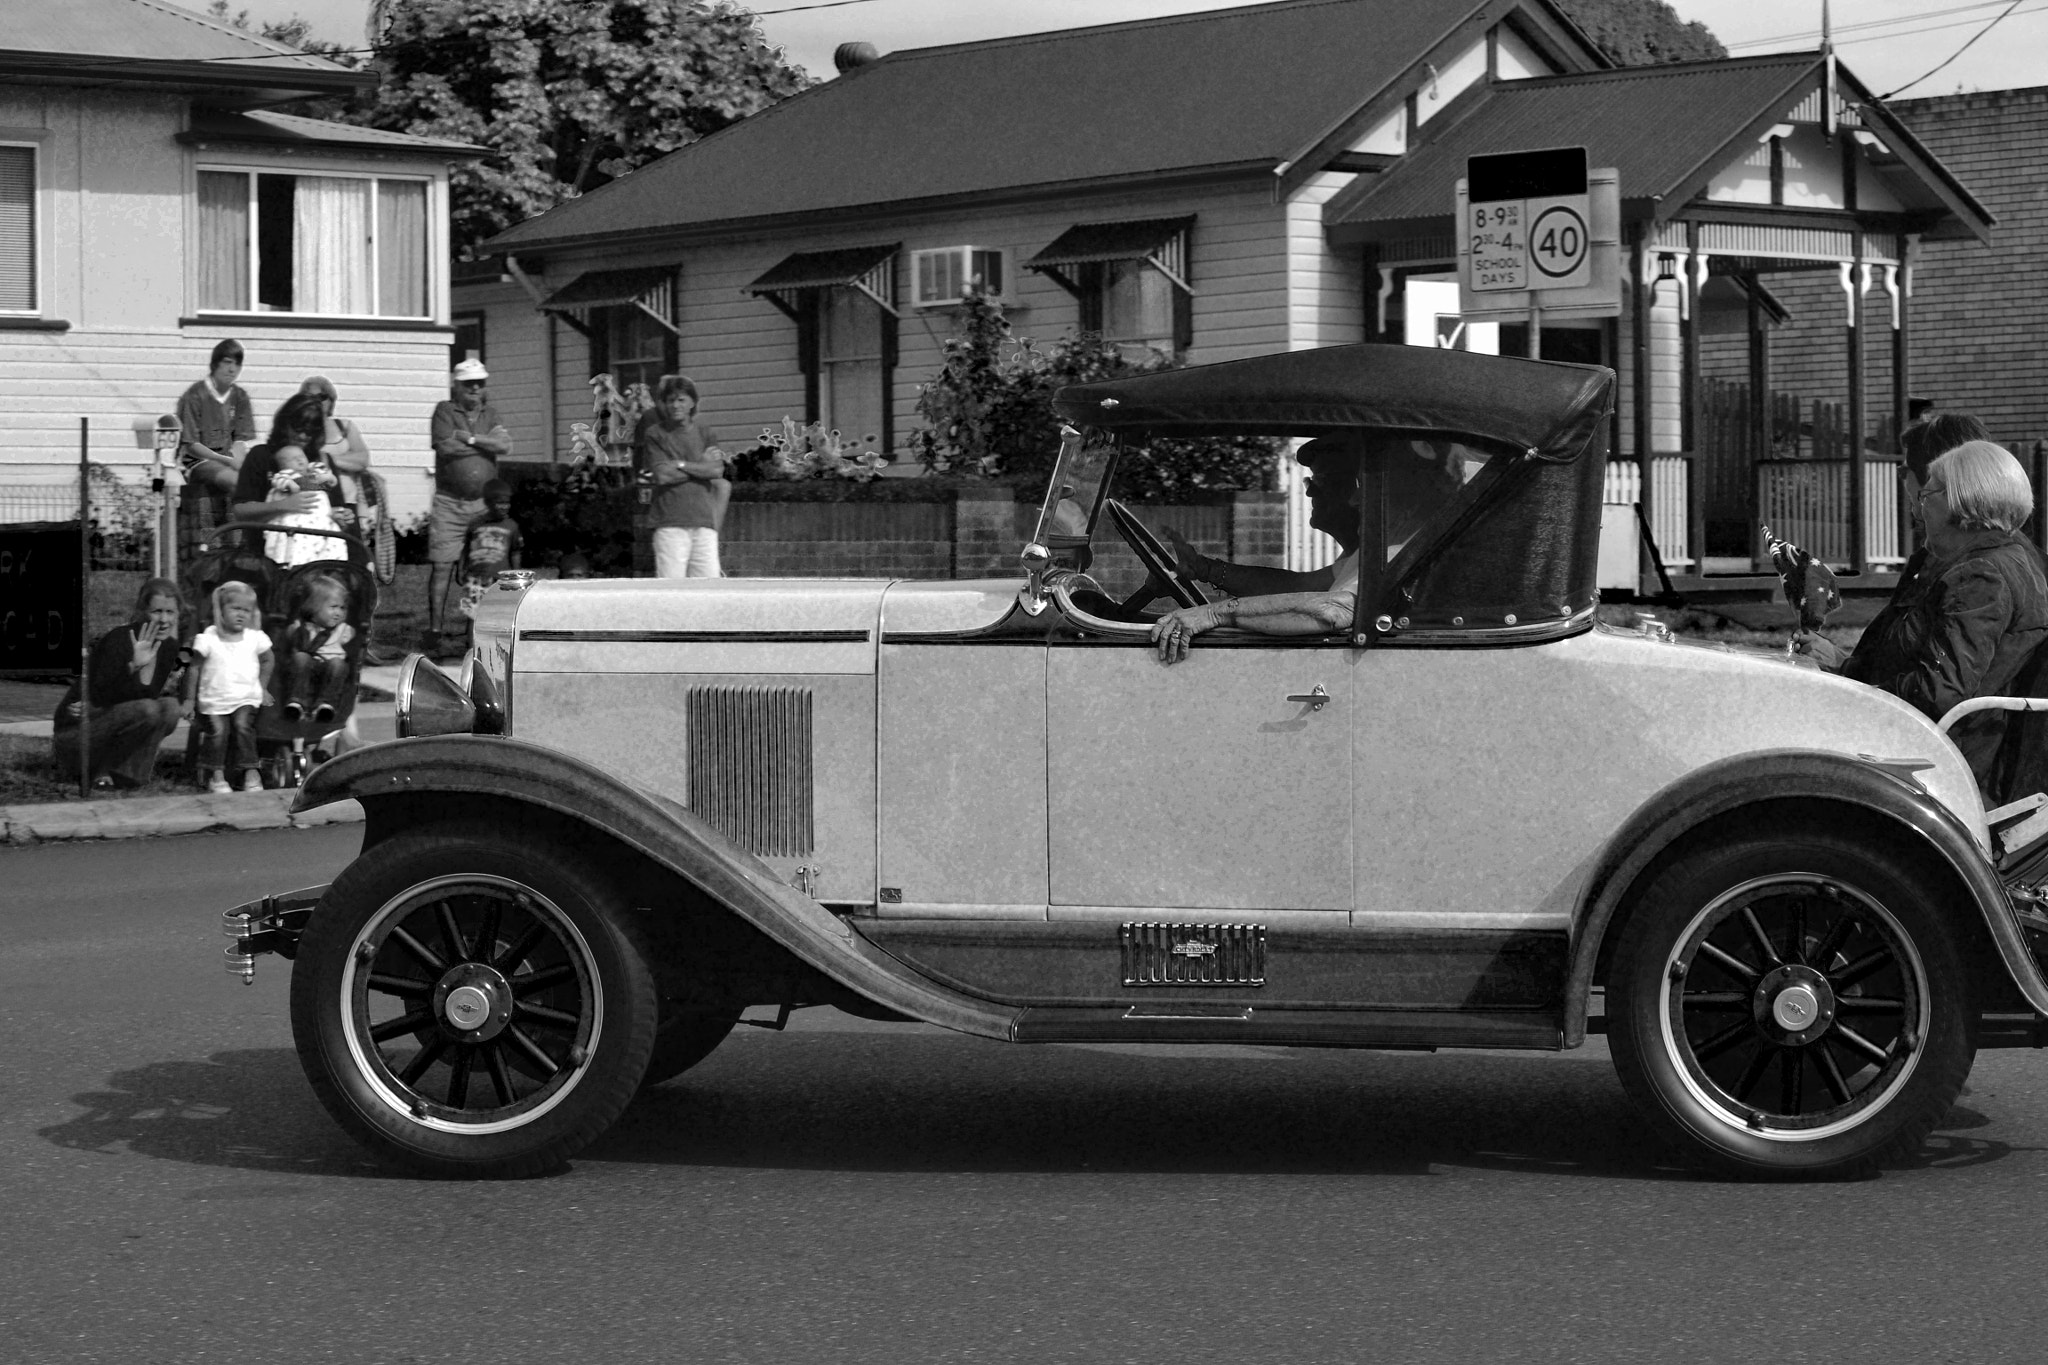 Photograph RETRO CAR 3 by kelly mitchell on 500px